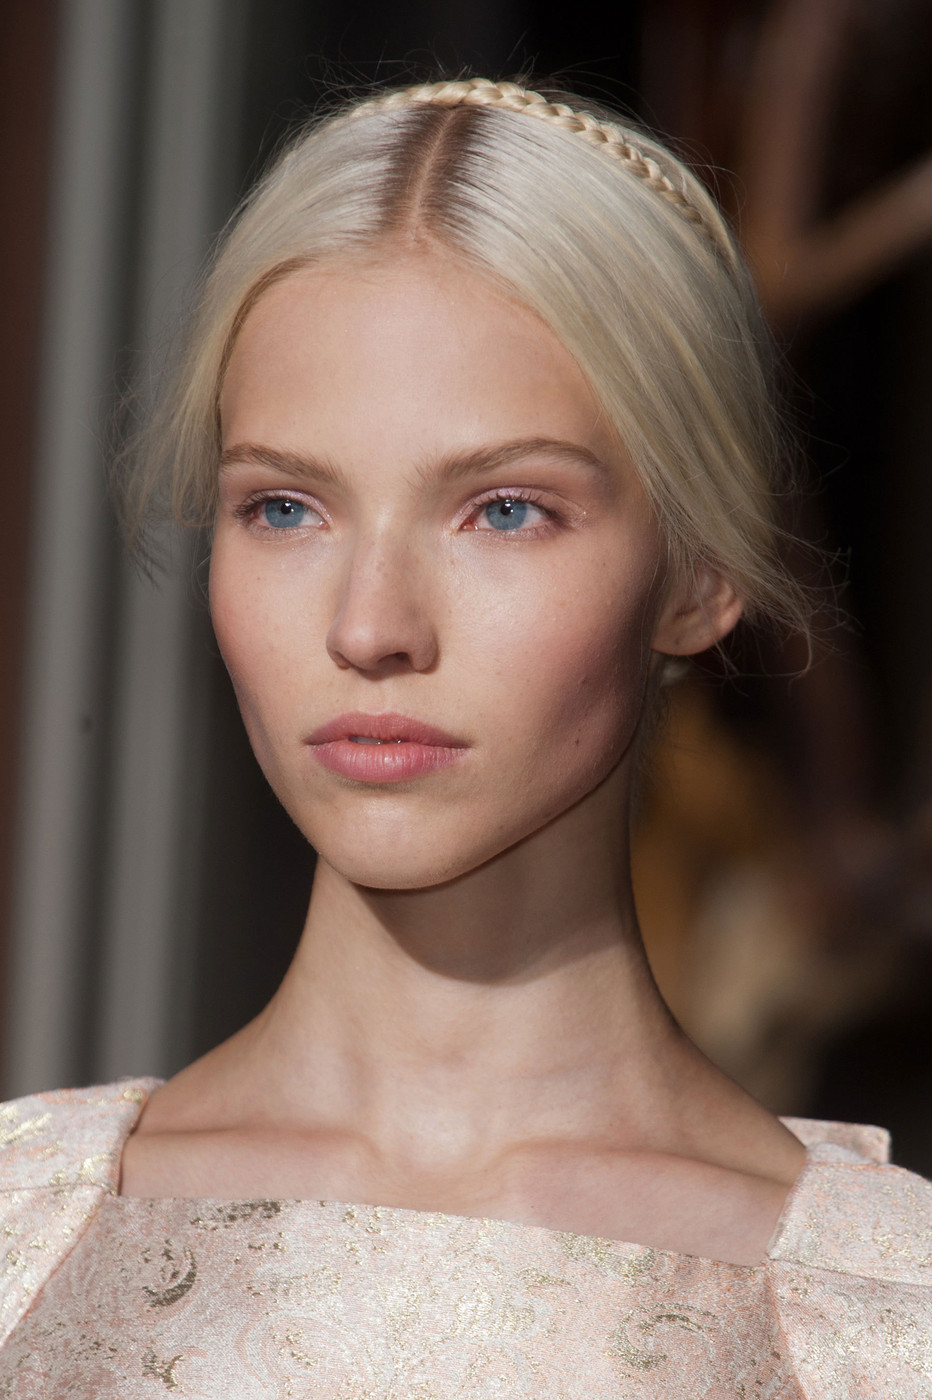 Pictures Sasha Luss nude (19 photos), Topless, Sideboobs, Boobs, bra 2019